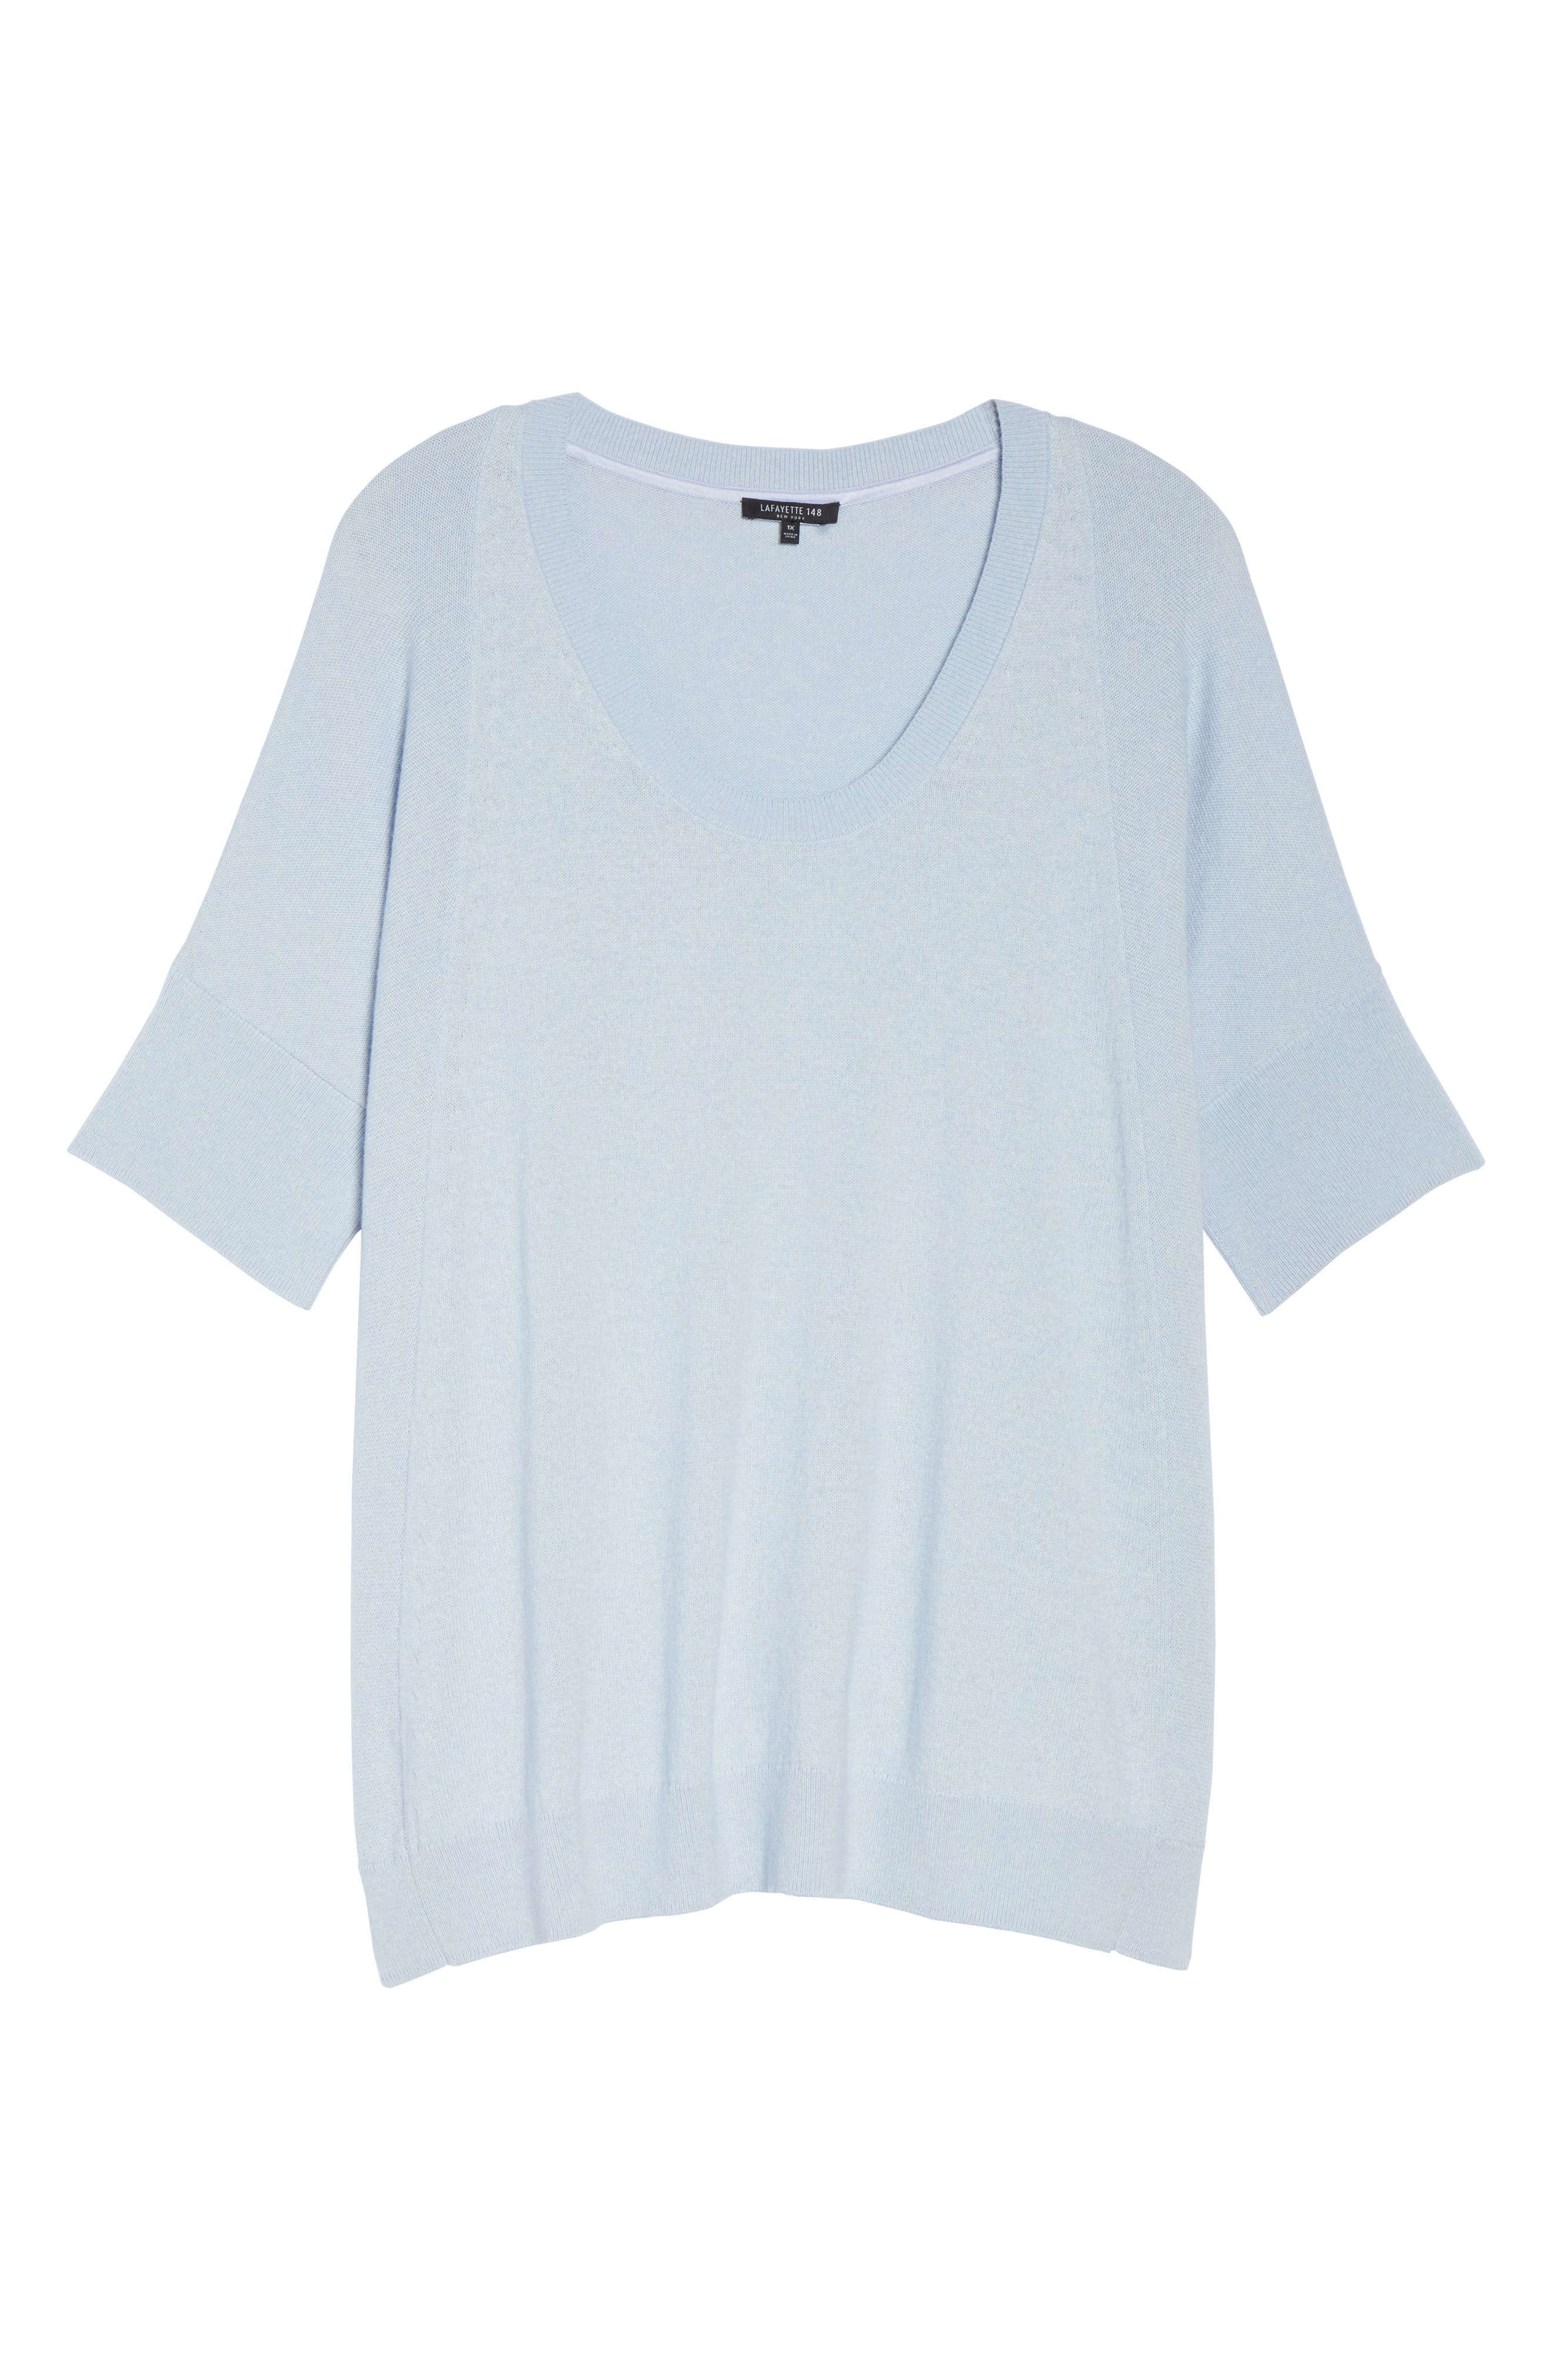 LAFAYETTE 148 NEW YORK,                             Cotton, Cashmere & Silk Oversized Scoop Neck Sweater,                             Alternate thumbnail 6, color,                             400